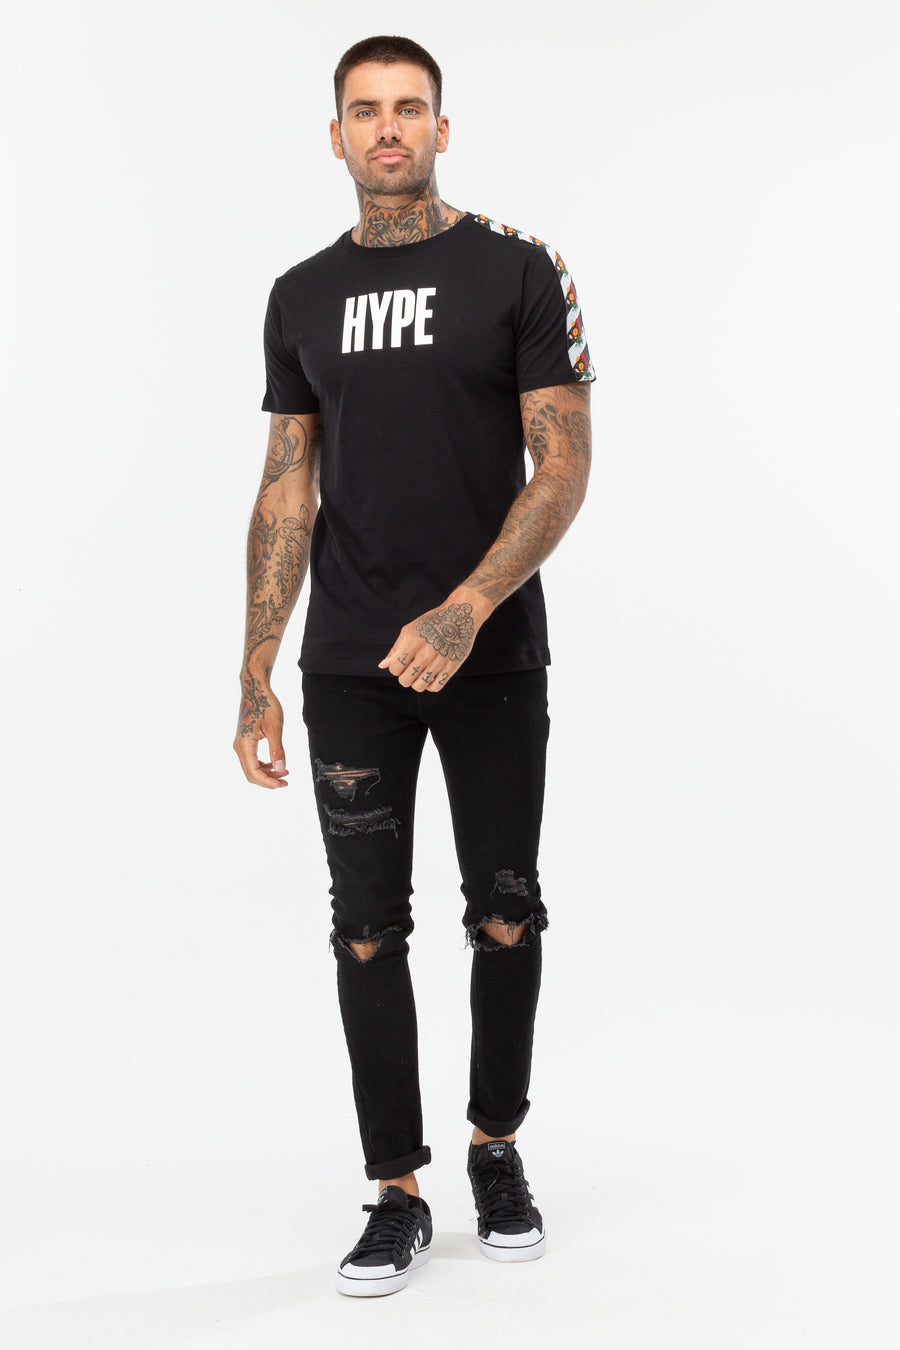 HYPE CHEVRON TAPE MEN'S T-SHIRT